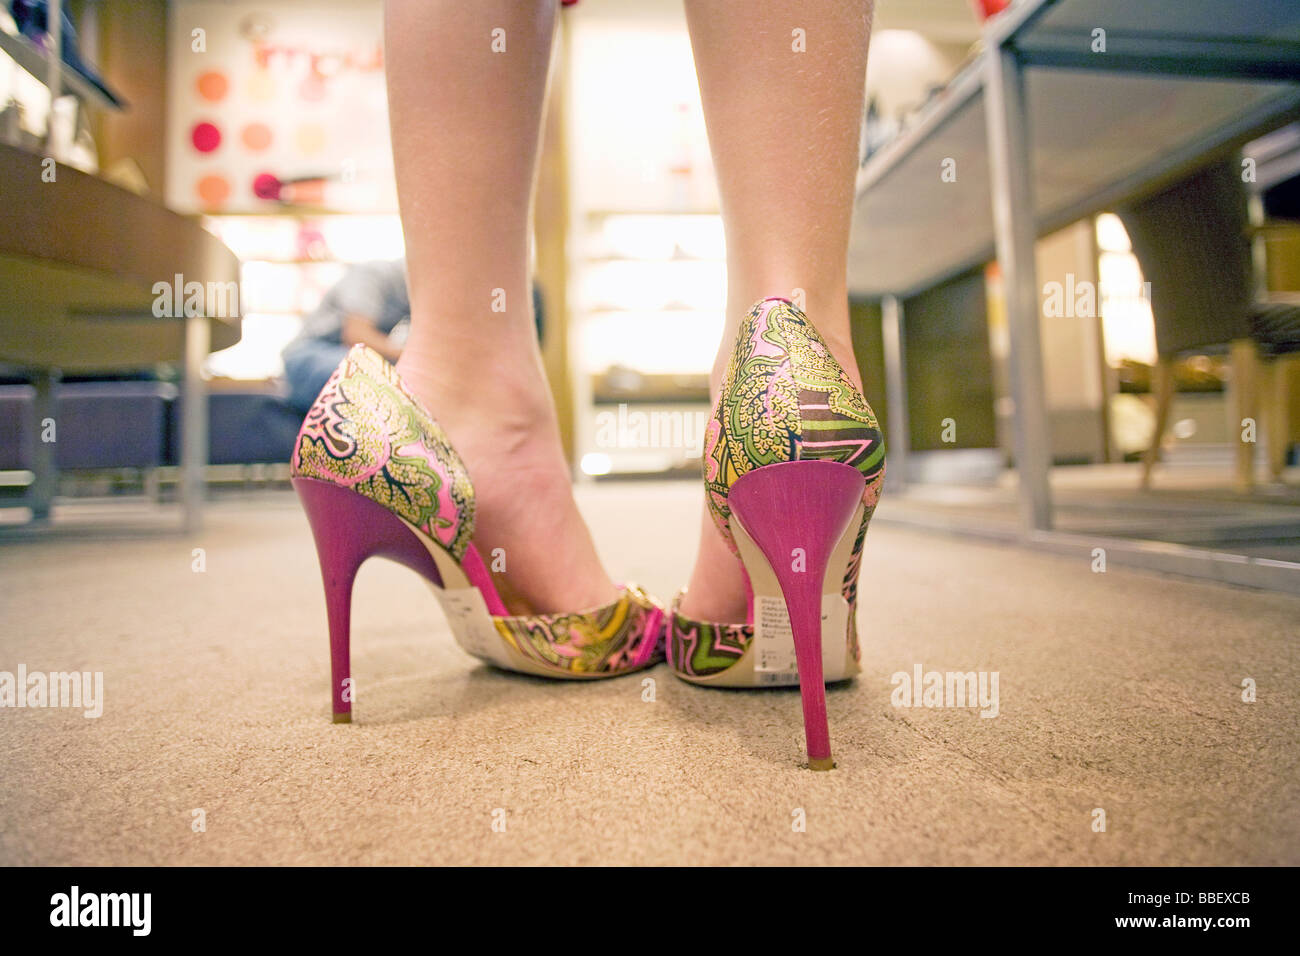 Close Up Young Feet In Heels Stock Photos Close Up Young Feet In